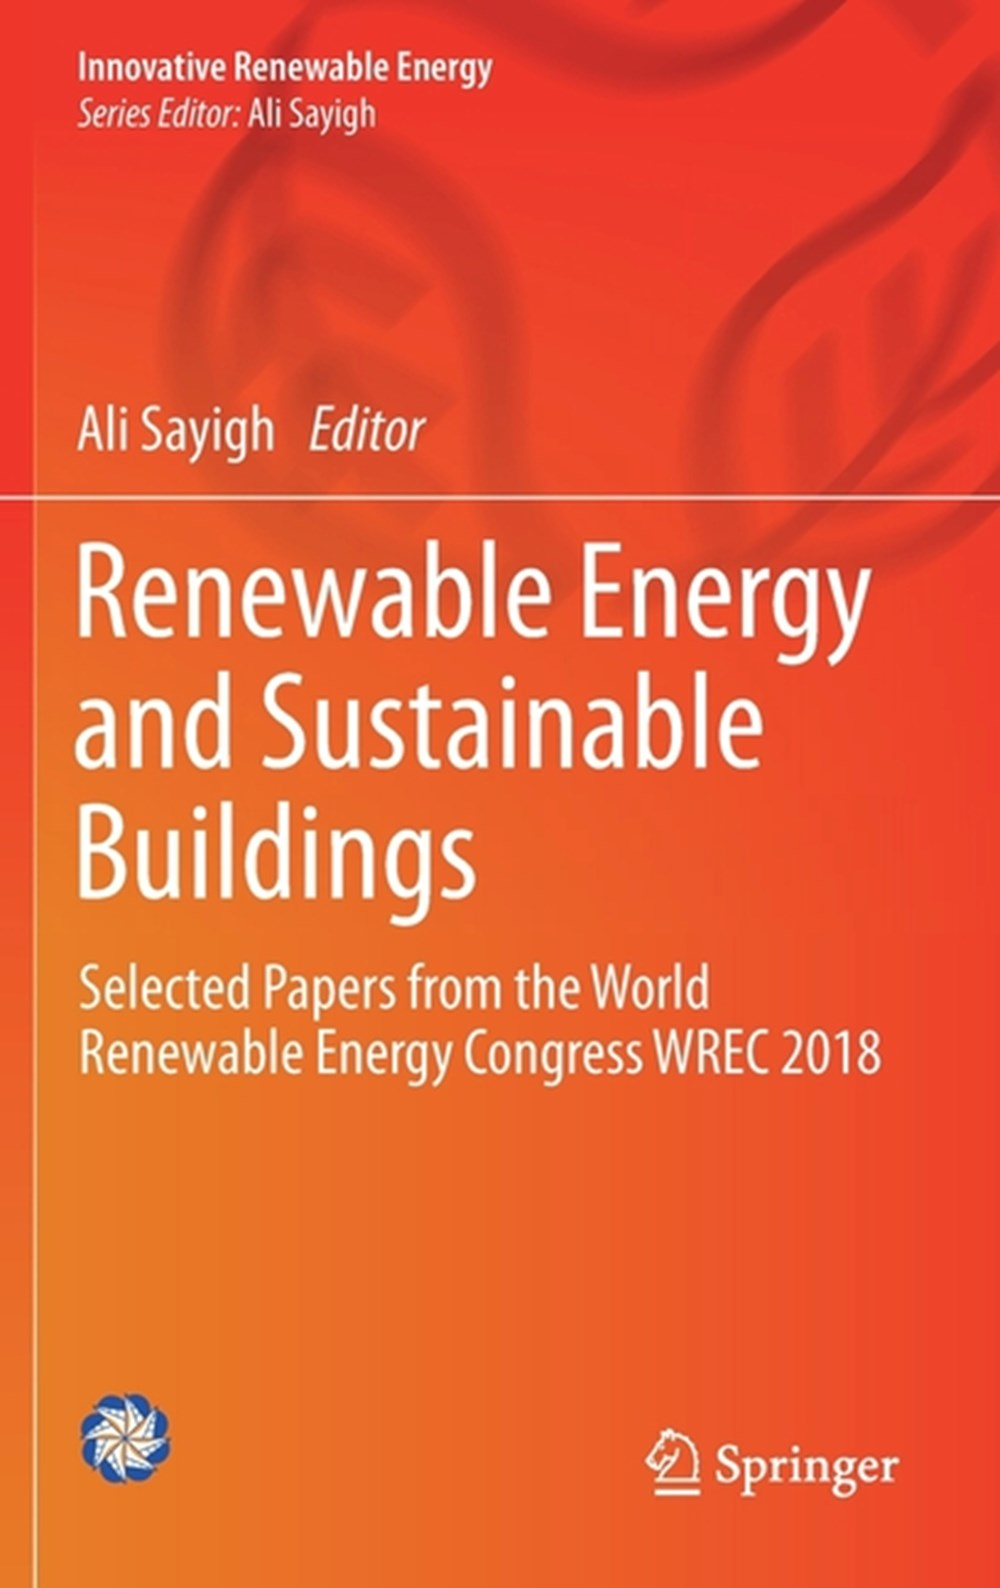 Renewable Energy and Sustainable Buildings Selected Papers from the World Renewable Energy Congress